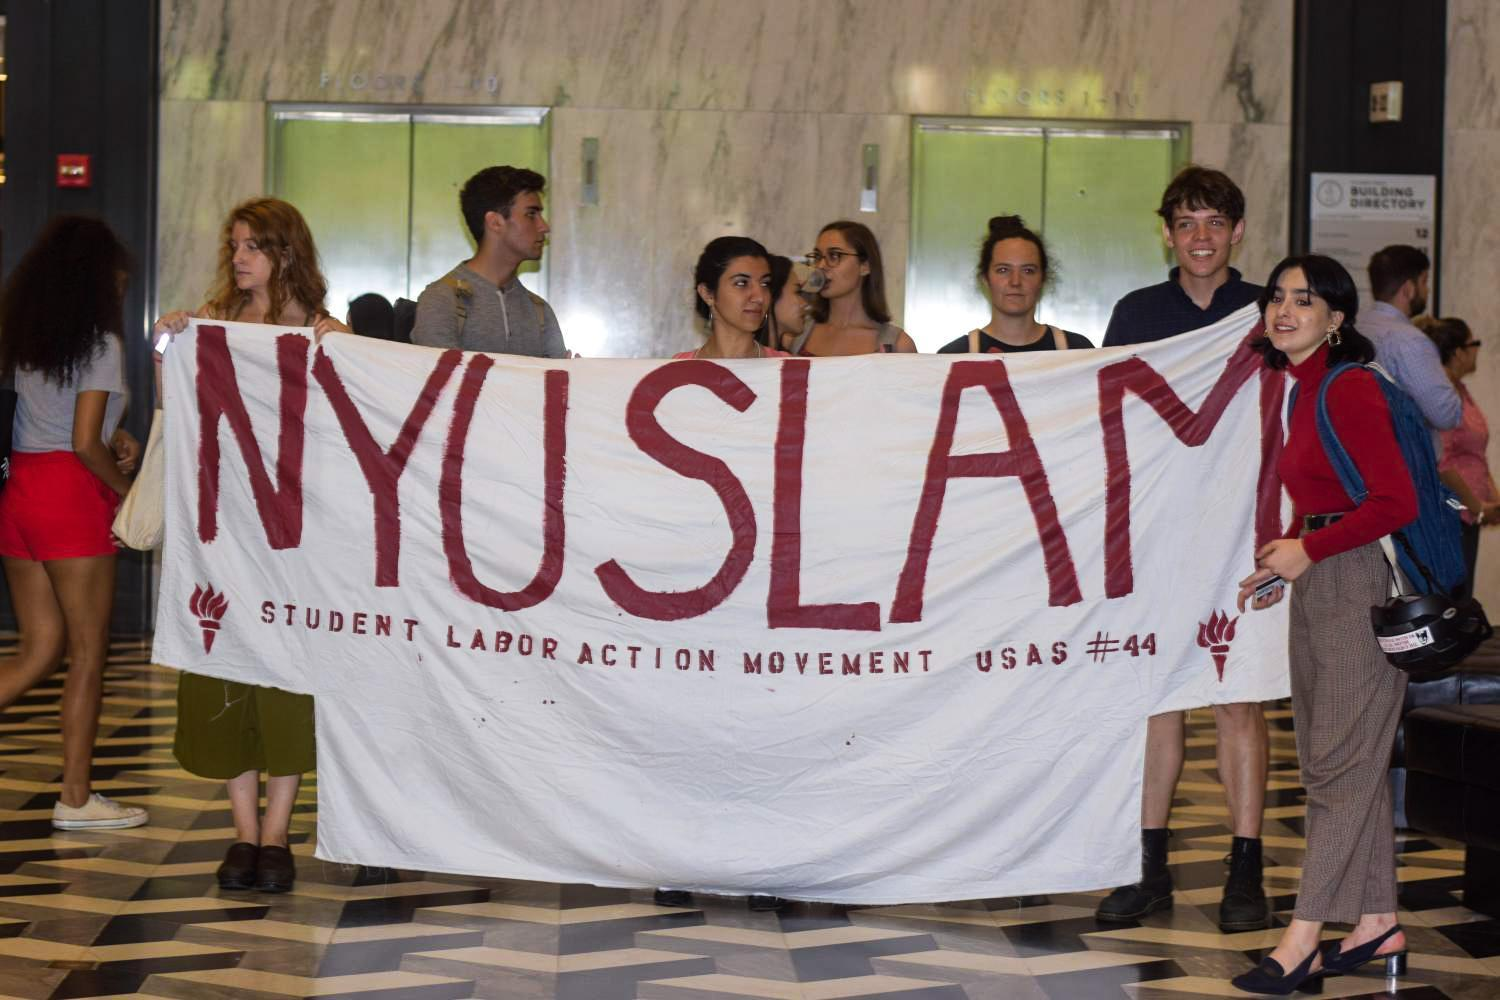 NYU SLAM has made a number of claims recently against members of the Board of Trustees in regard to their conflicting interests.